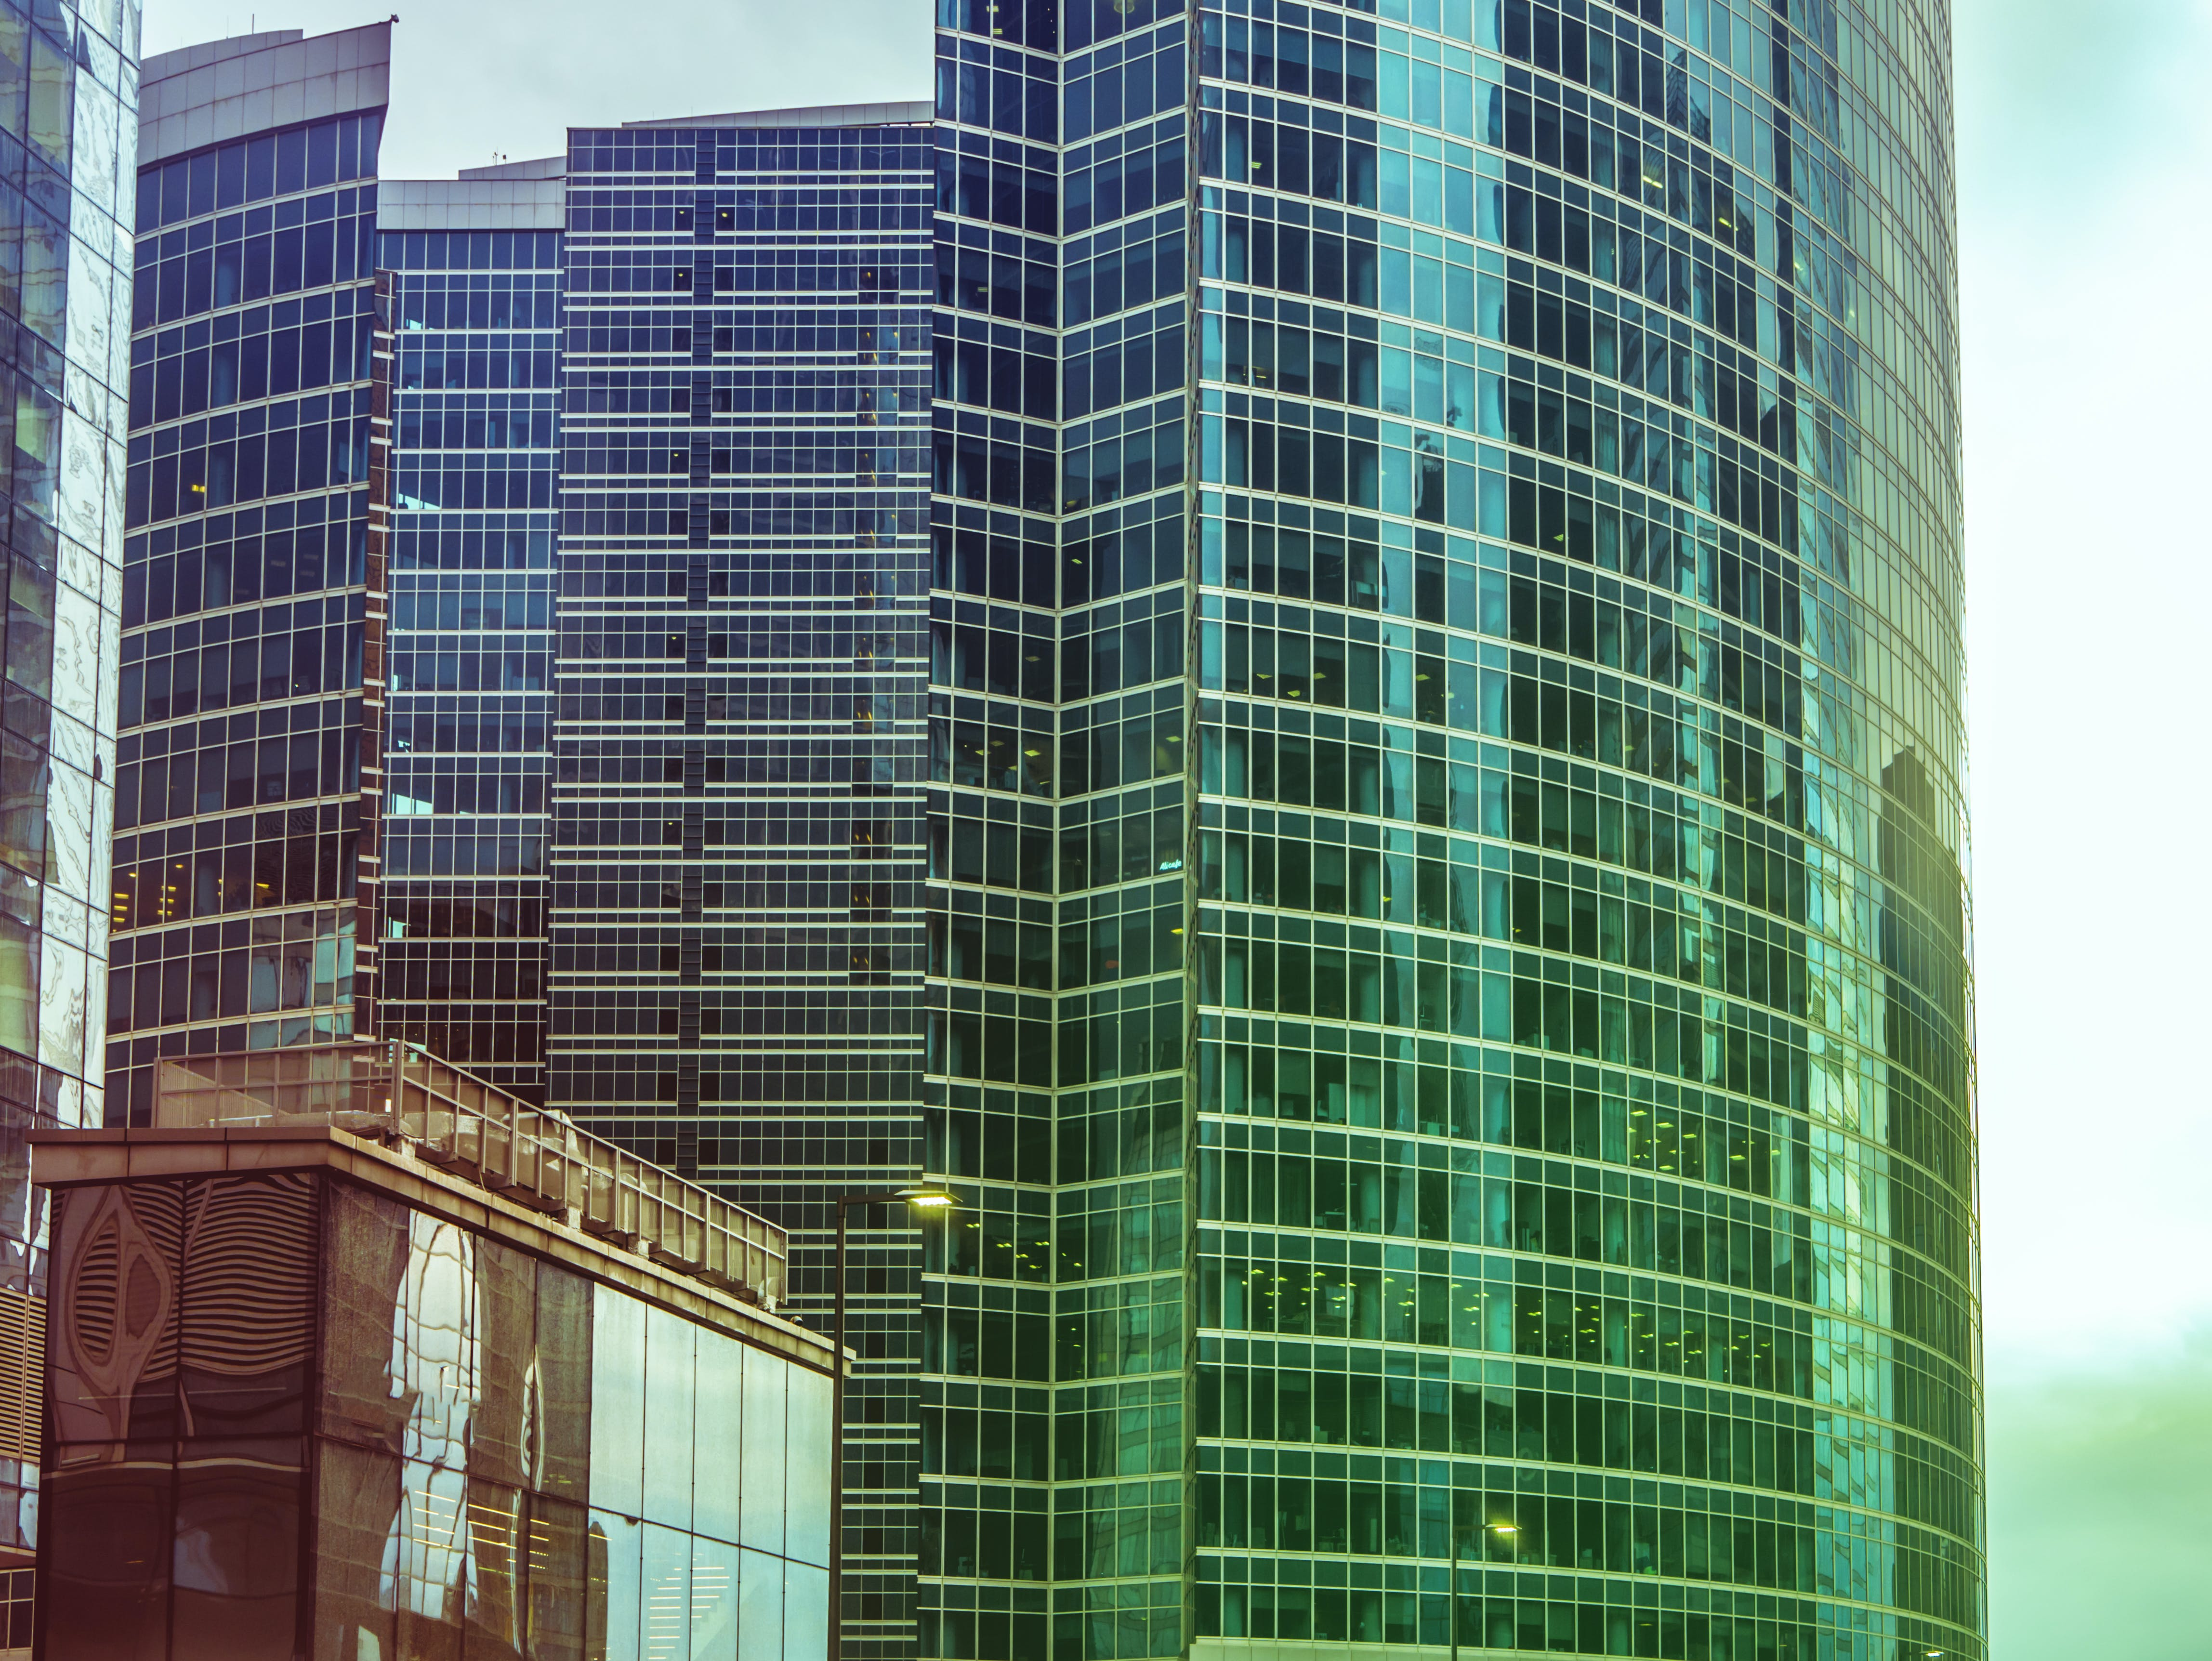 Photo of Glass Window Building